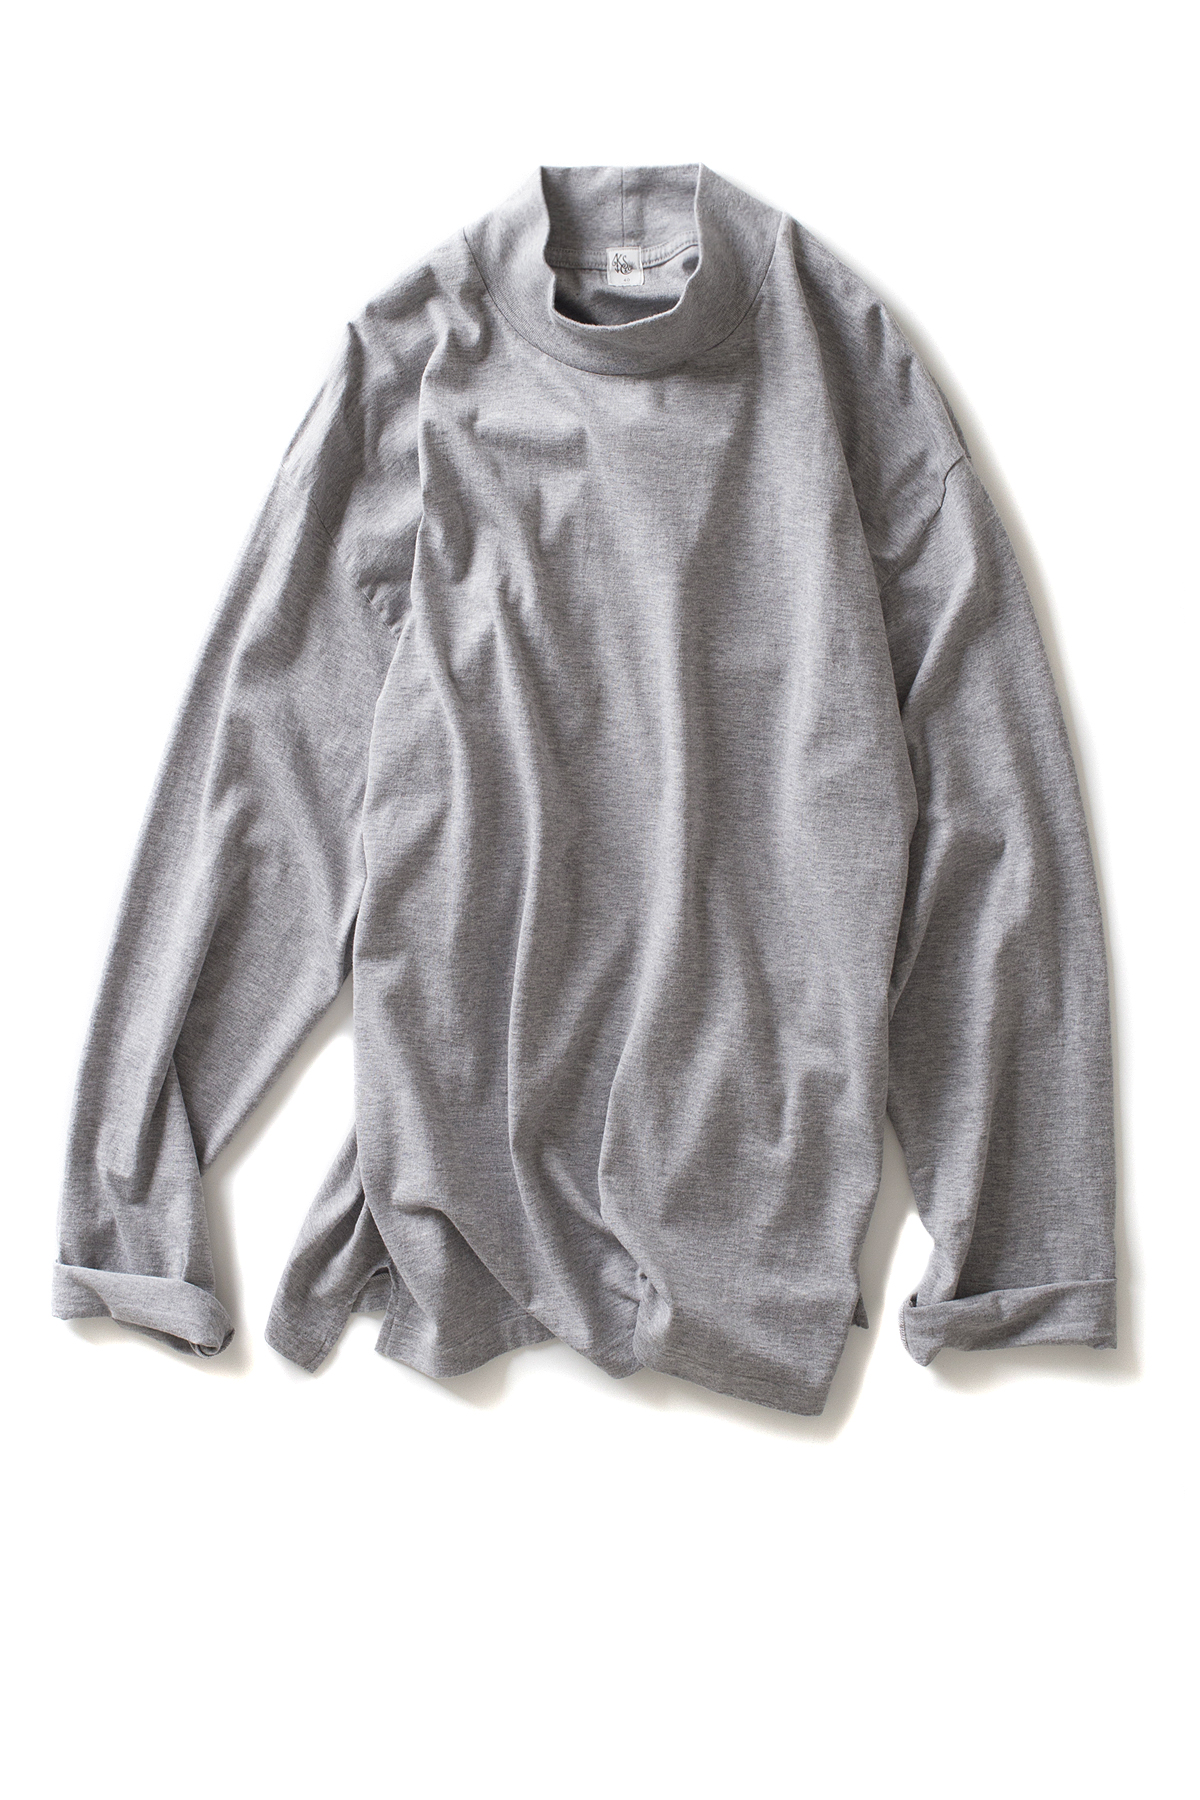 Kaptain Sunshine : Navy Yard Long Sleeve Tee (Heather Gray)